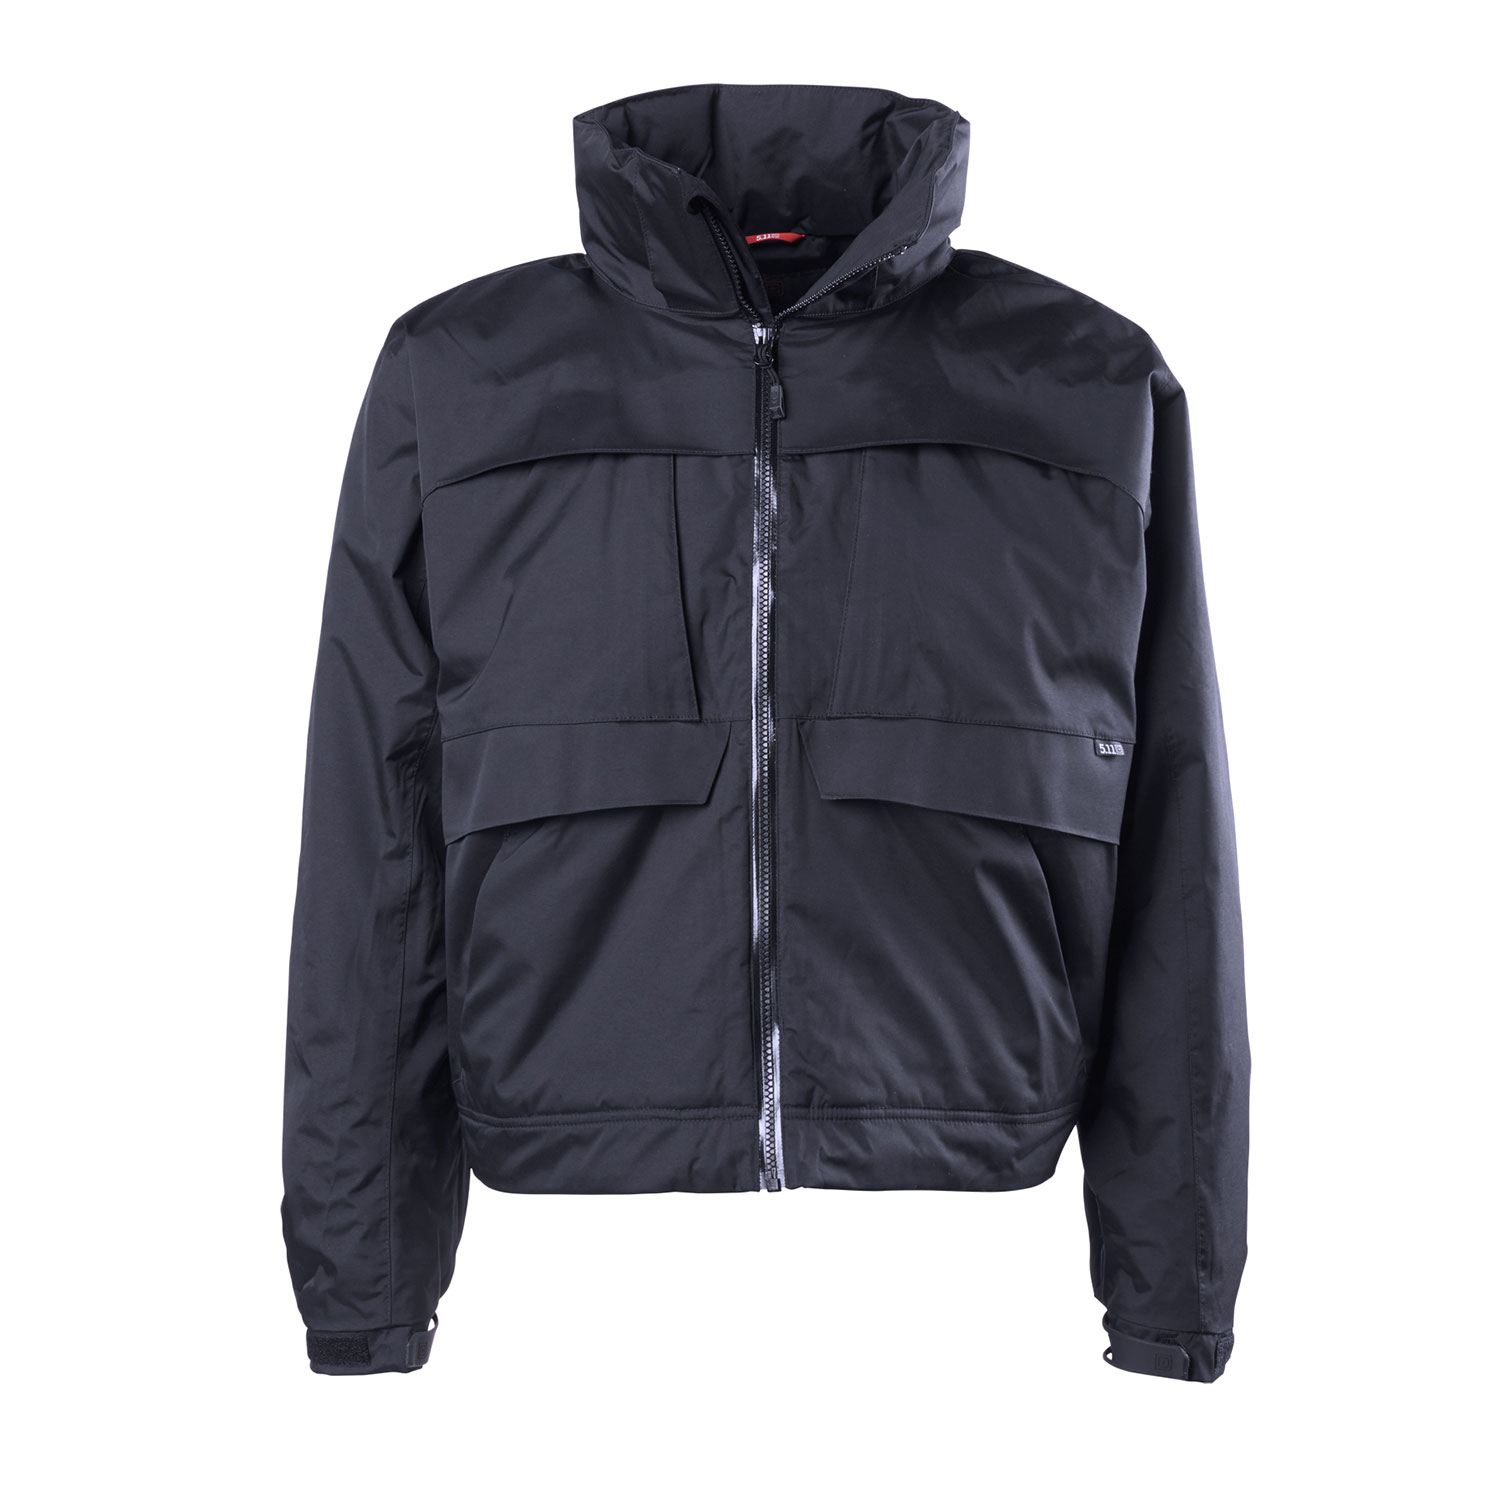 5.11 Tempest Waterproof Duty Jacket